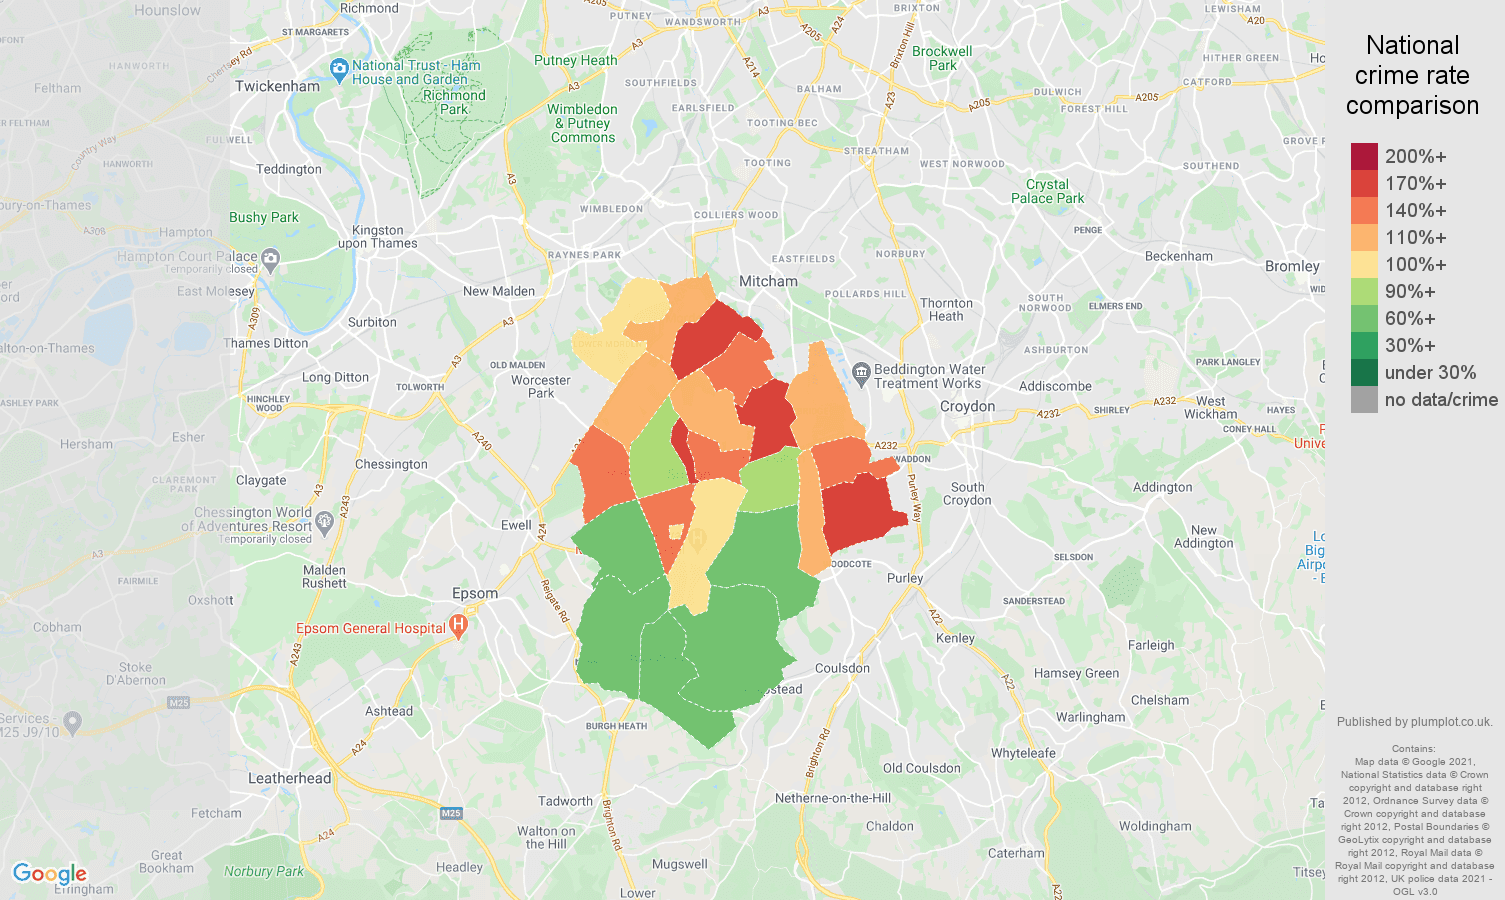 Sutton antisocial behaviour crime rate comparison map